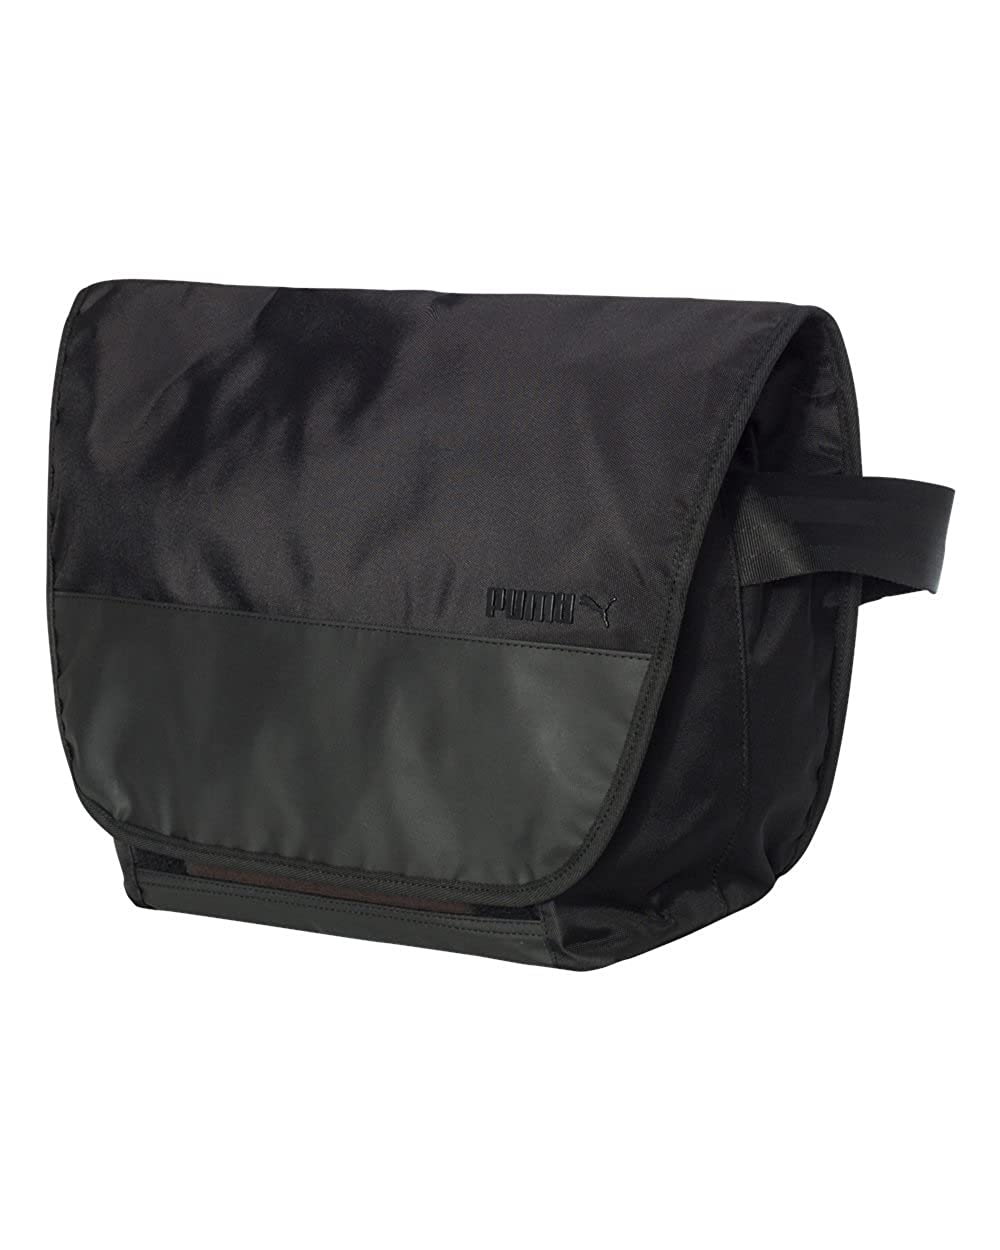 2b0ea99203 Puma Droptop CE Messenger Bag PSC1009 Black OS  Amazon.ca  Clothing    Accessories